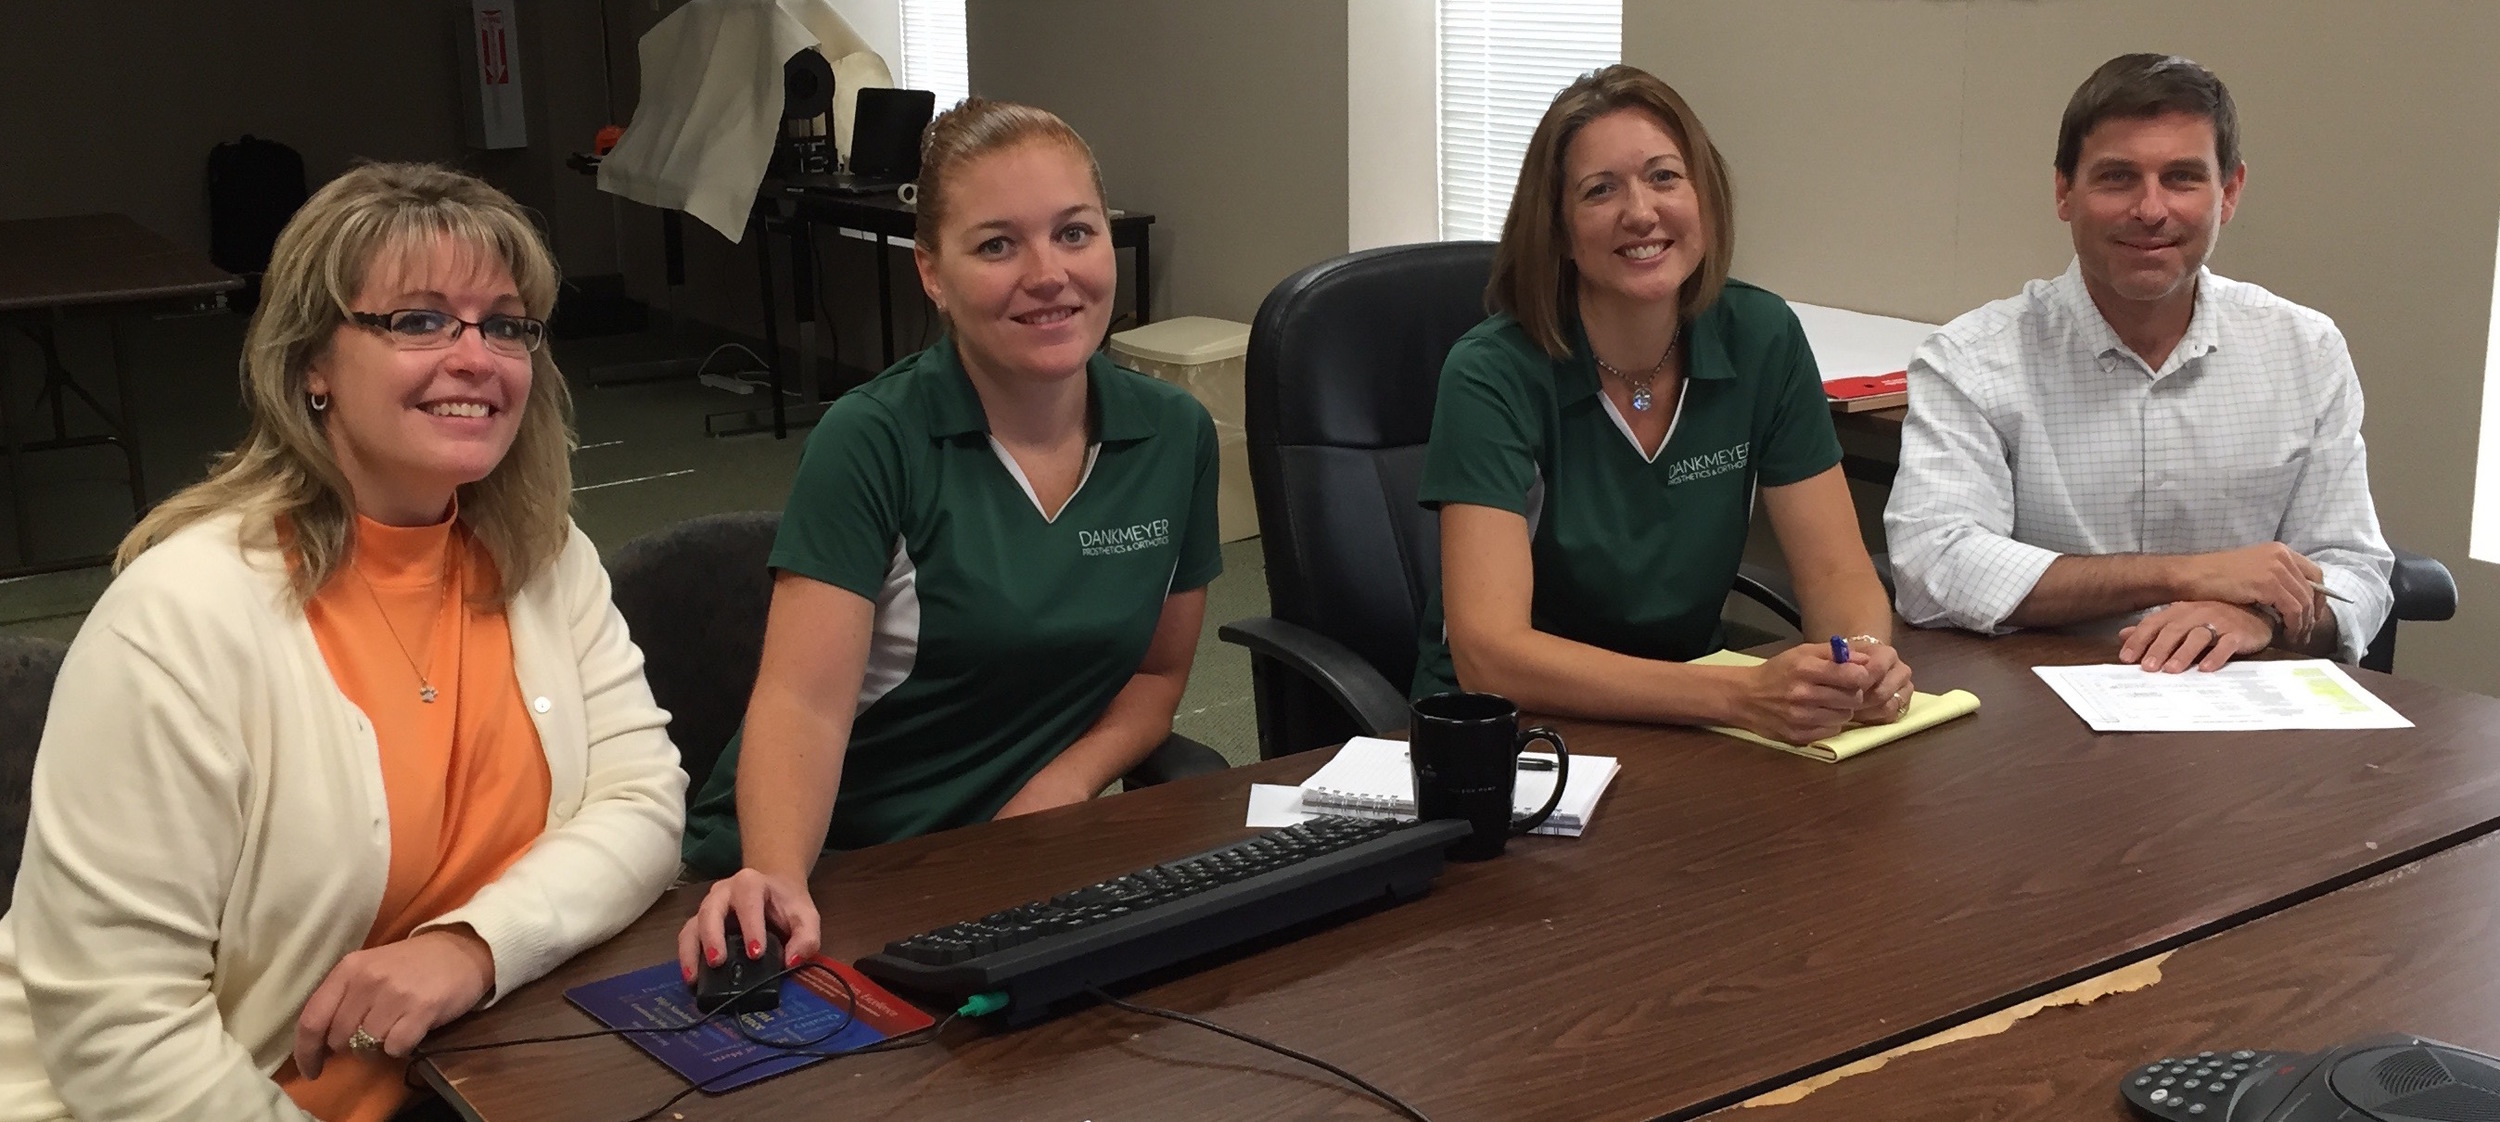 One of our patient care teams working to provide the best in patient services: Kristin Boswell, Courtney Booth, Mary Reedy CP, and Mark Hopkins CPO, PT.